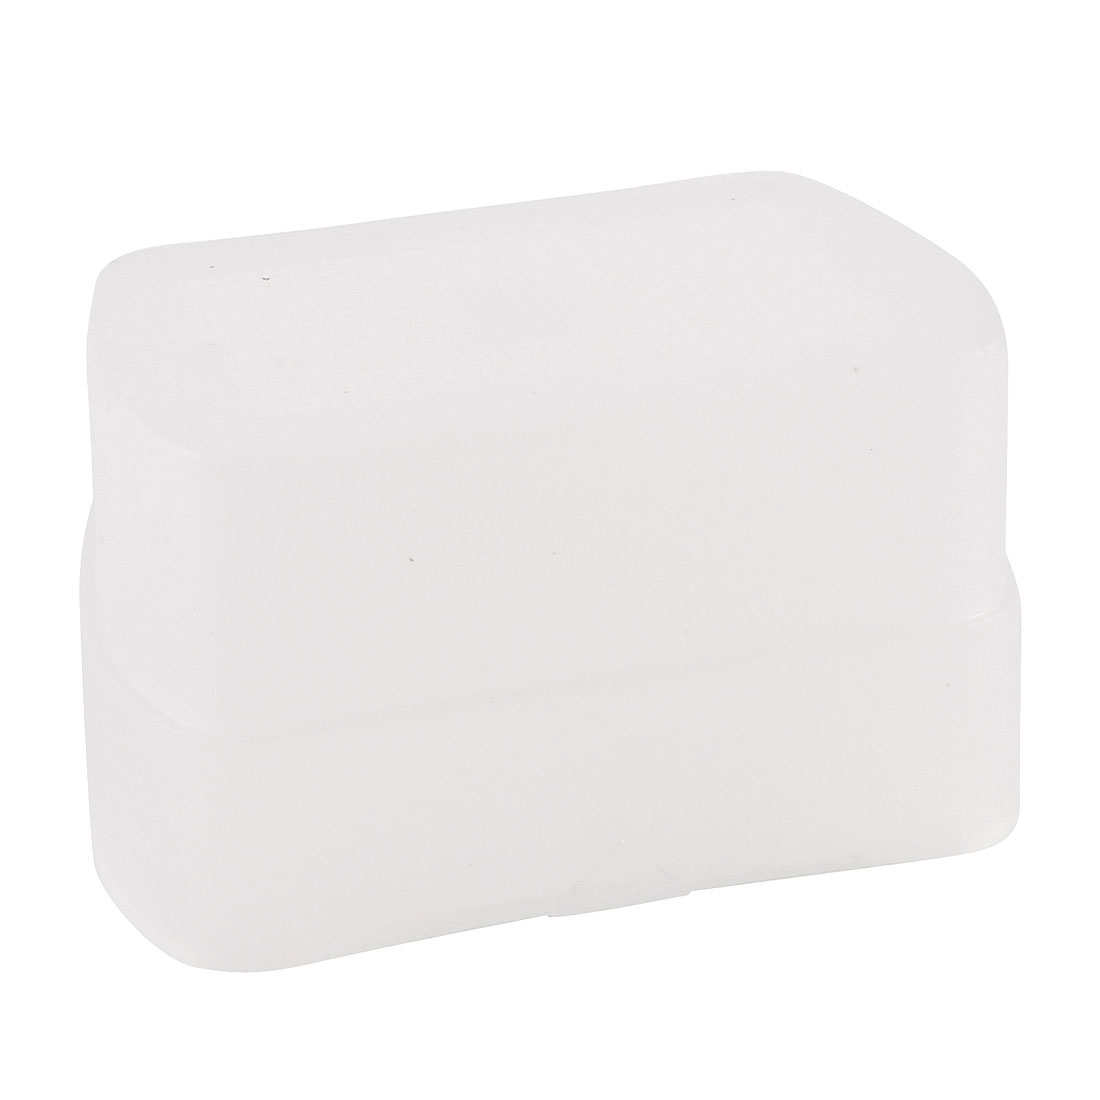 Soft Box Flash Diffuser White Bounce Softbox Cover for Canon 430EX